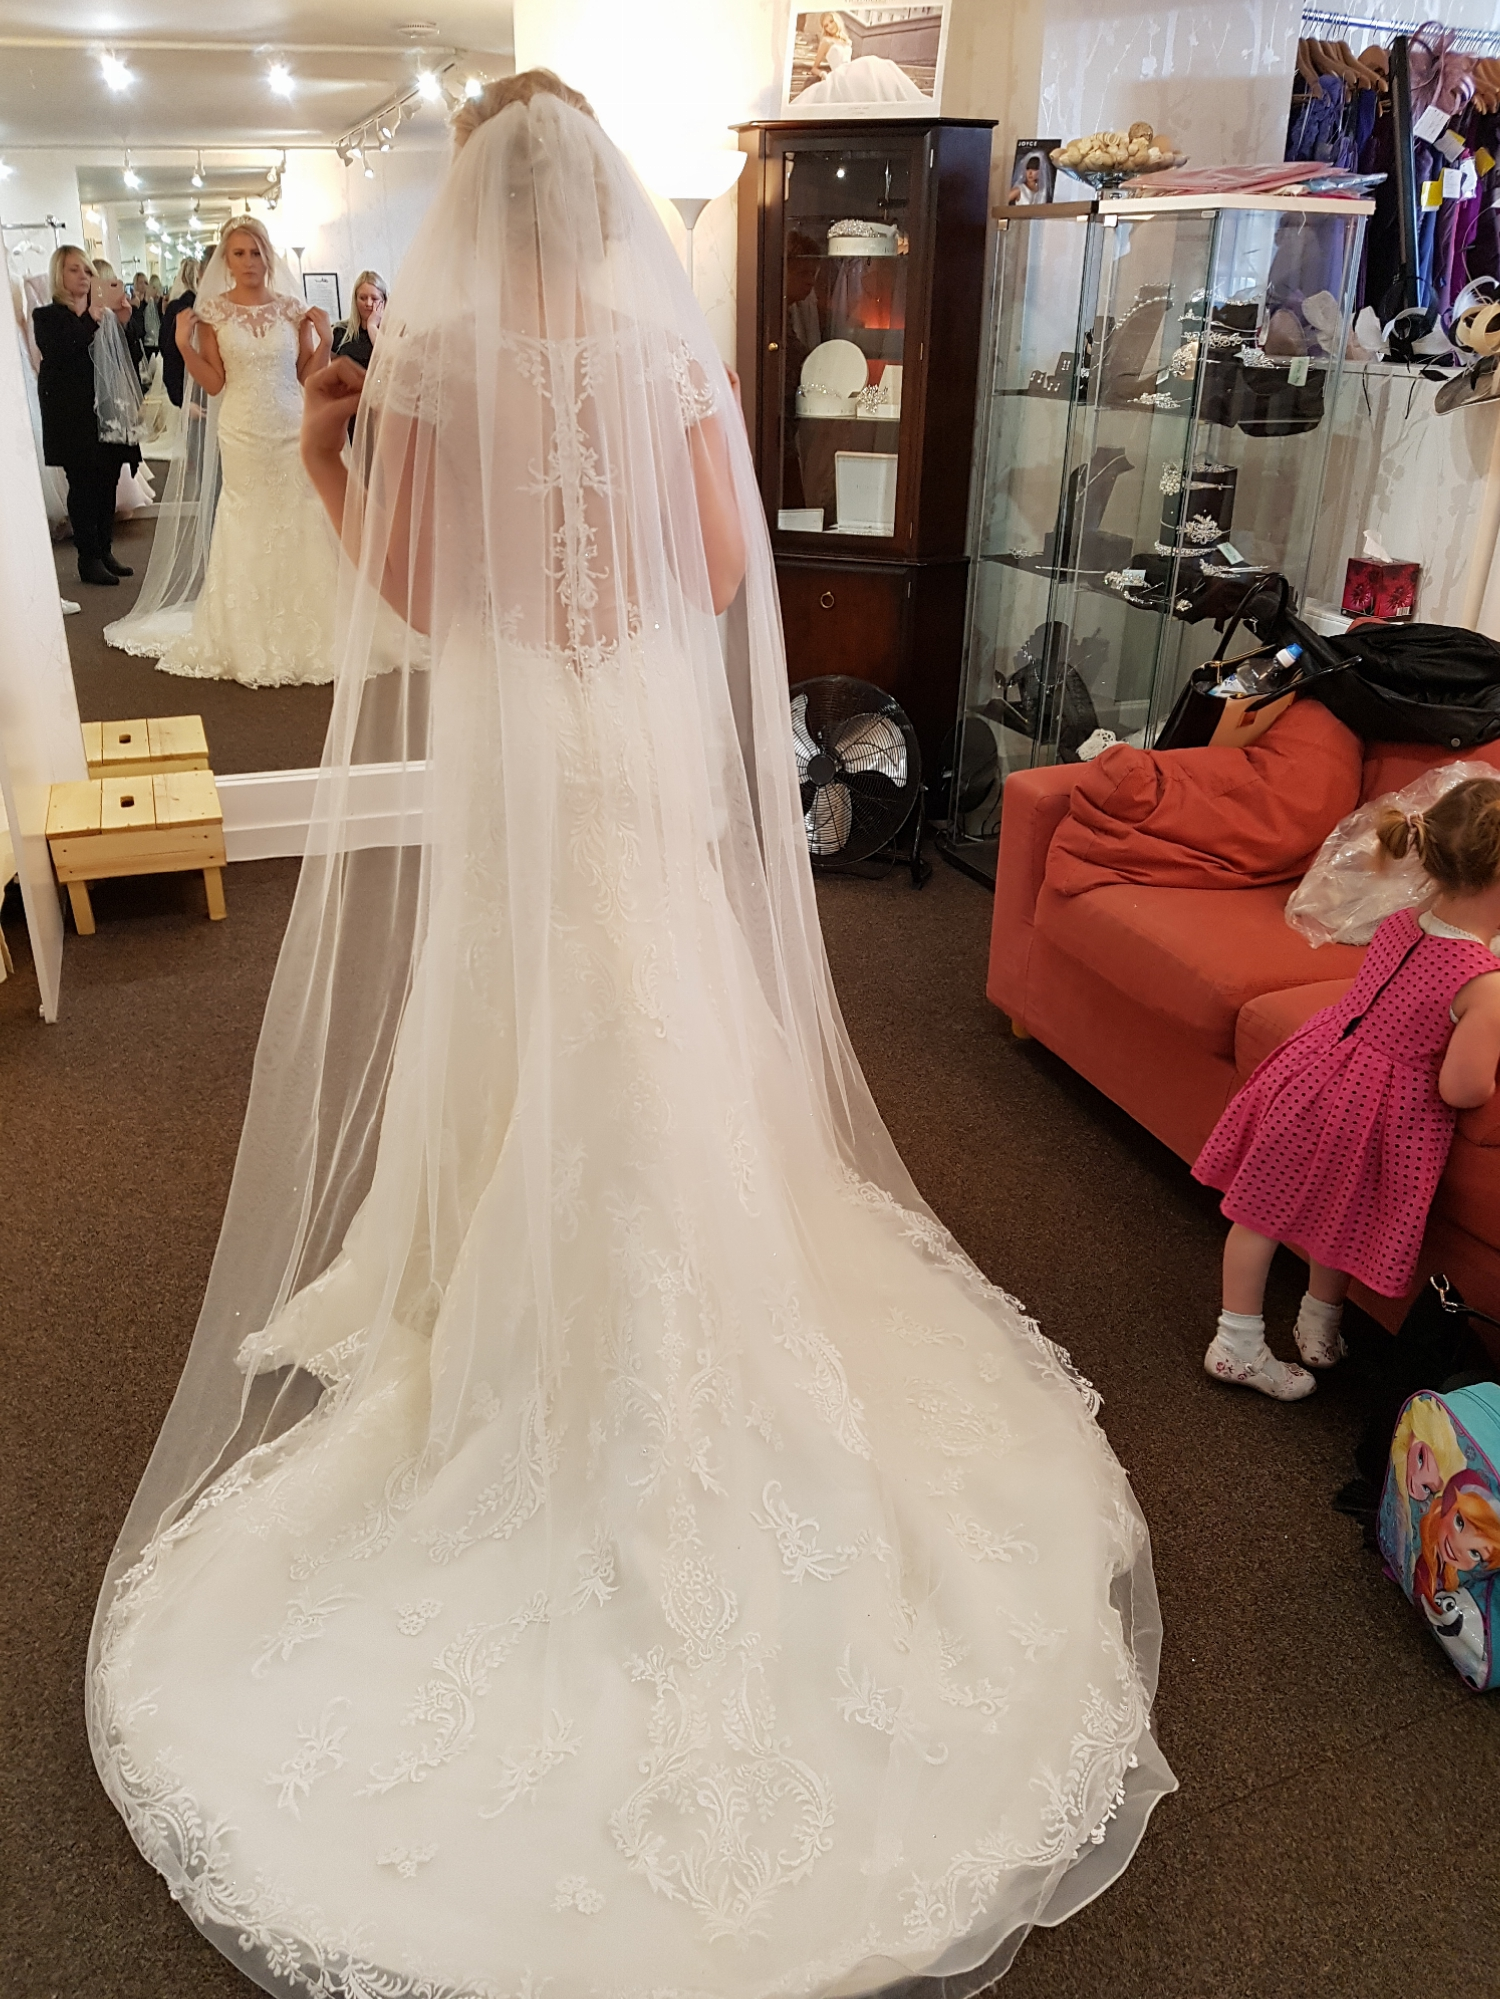 Juli grbac wedding dress